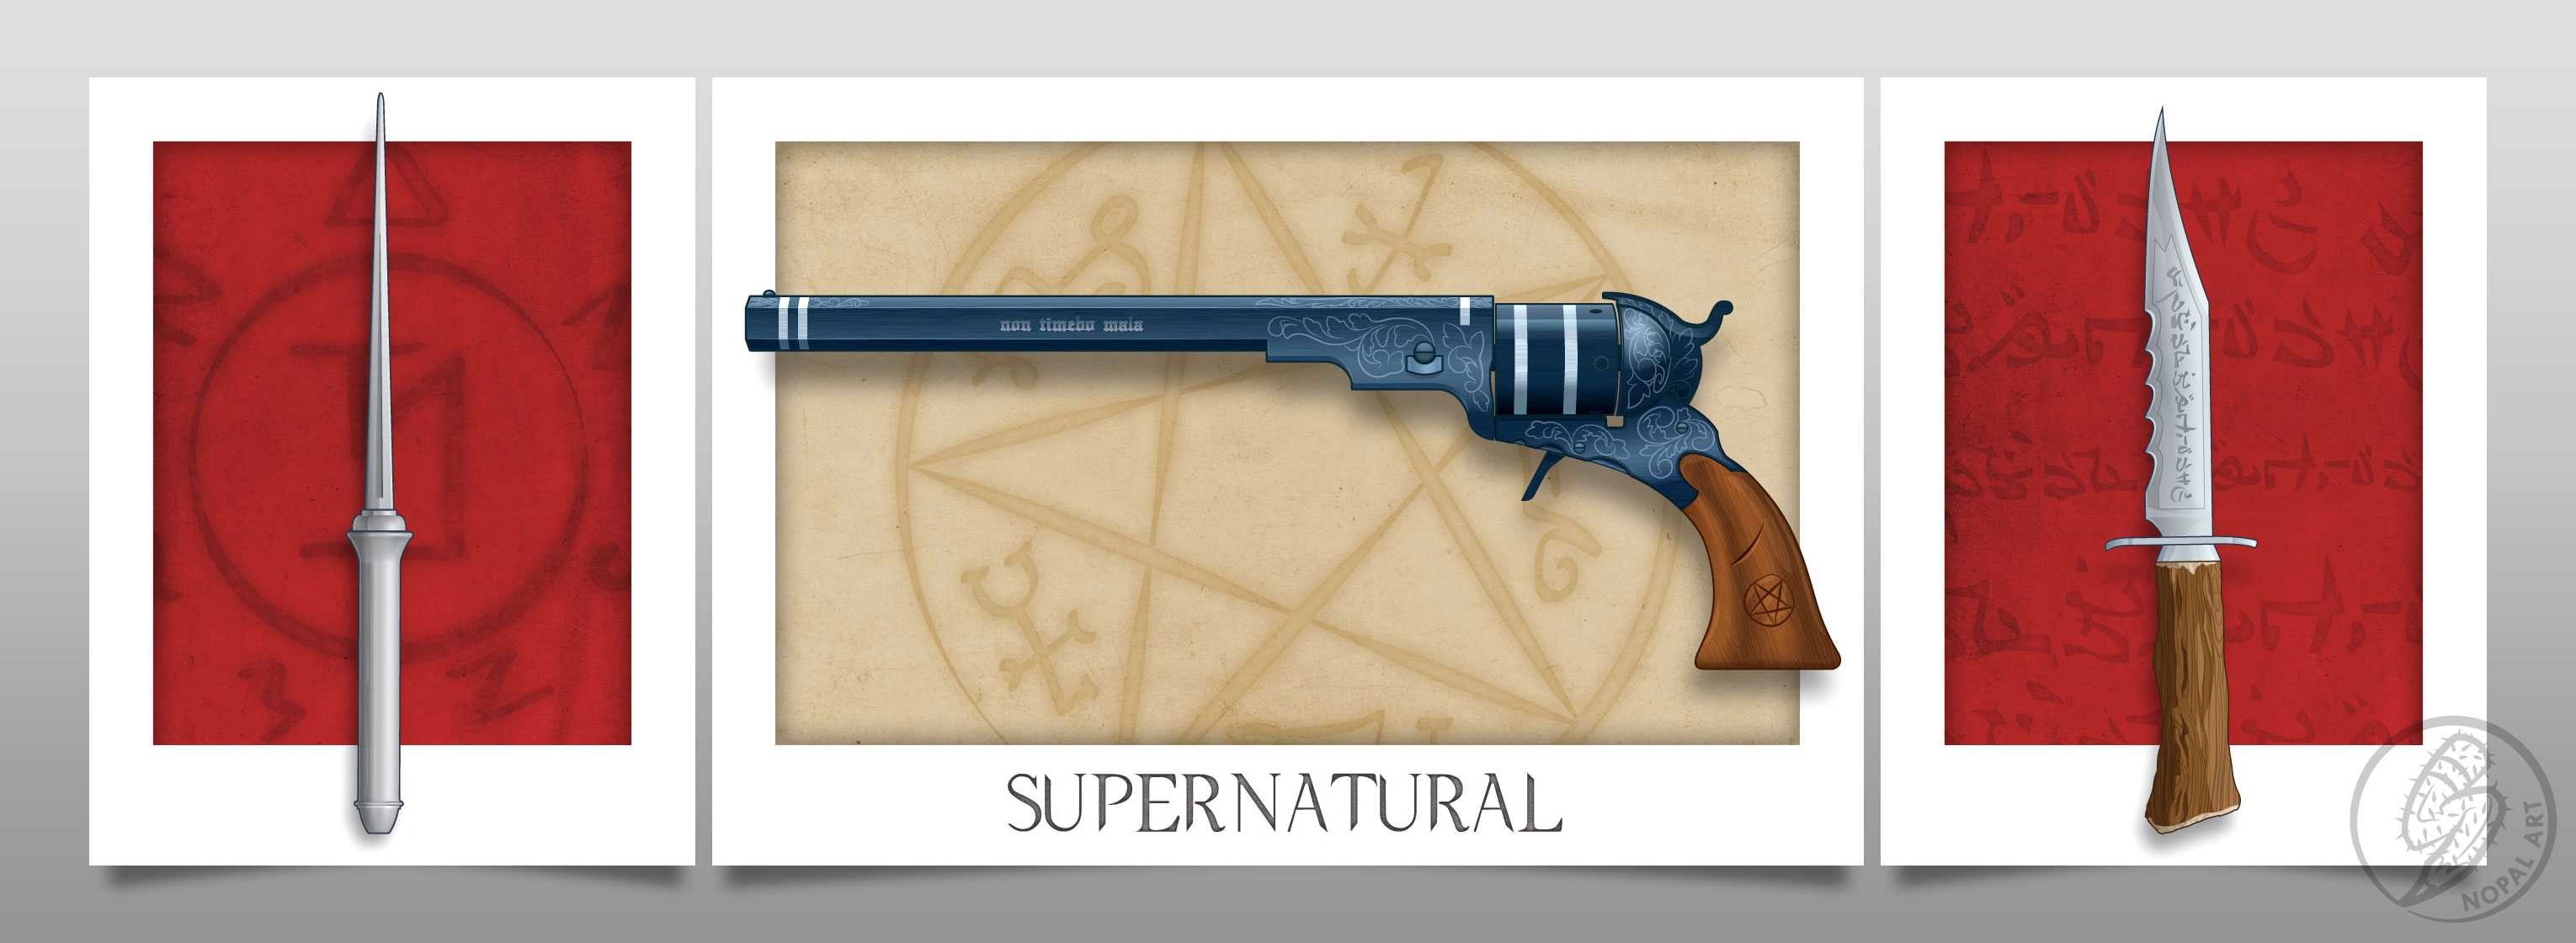 NOPAL Art: Weapons of Supernatural original print